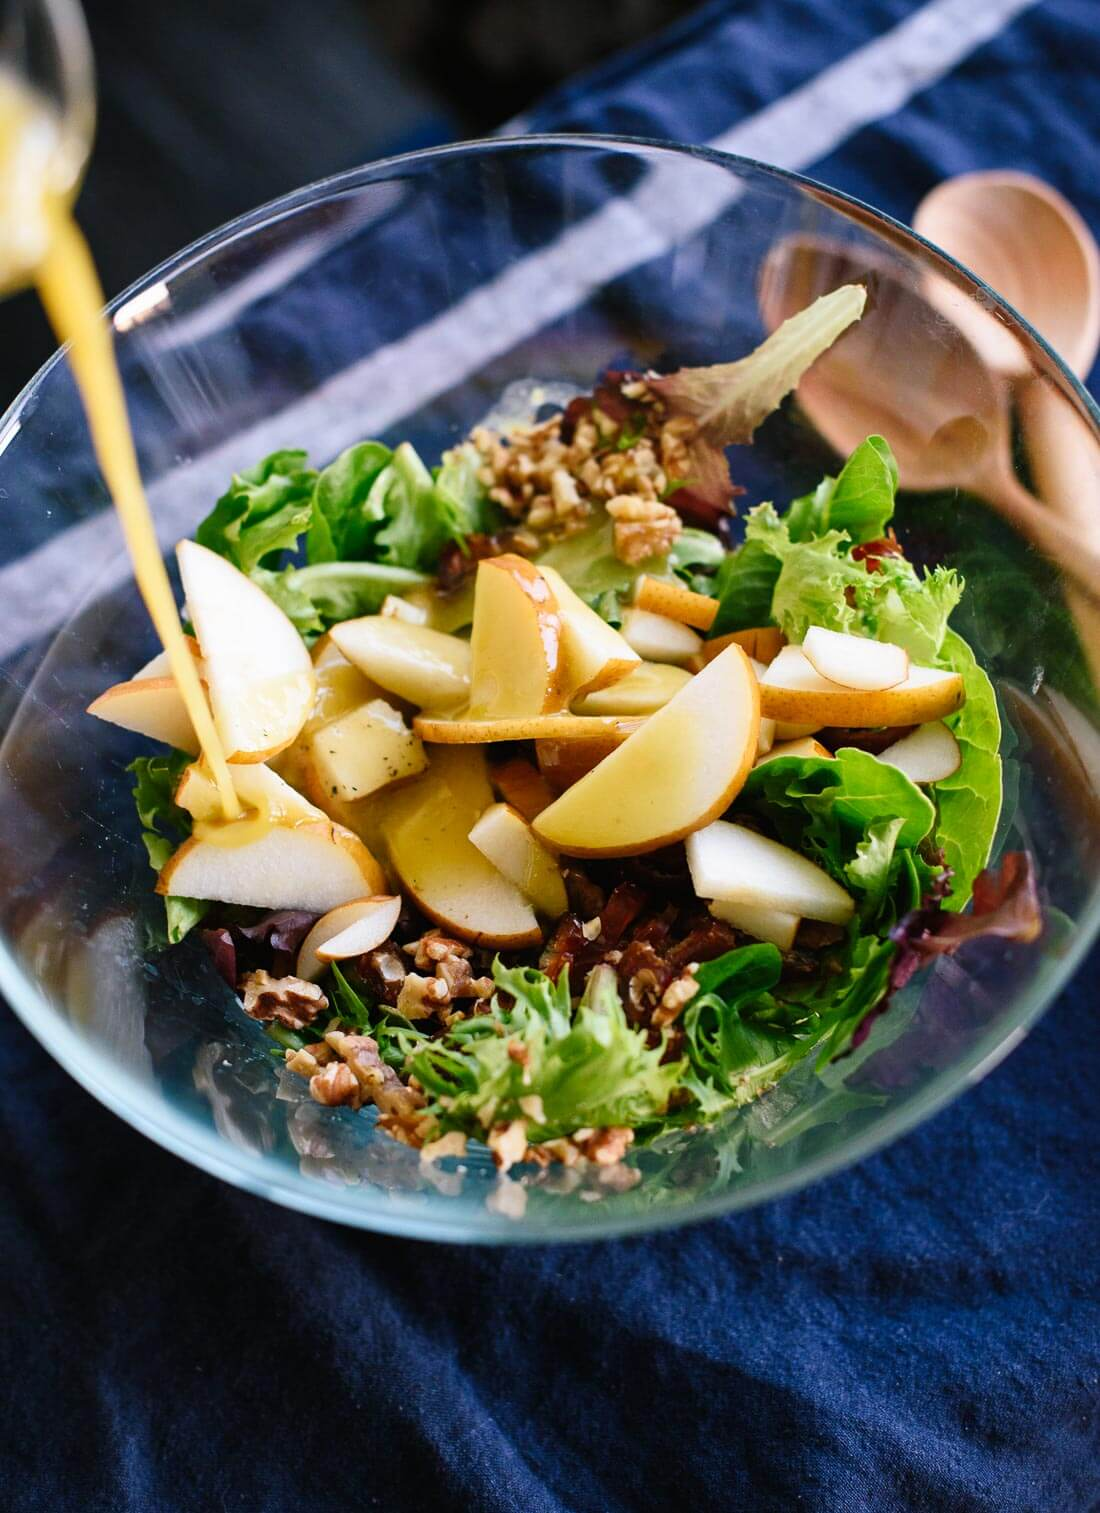 Here's a fresh green salad for your holiday table, featuring pears, walnuts, dates and blue cheese tossed in a simple vinaigrette! cookieandkate.com